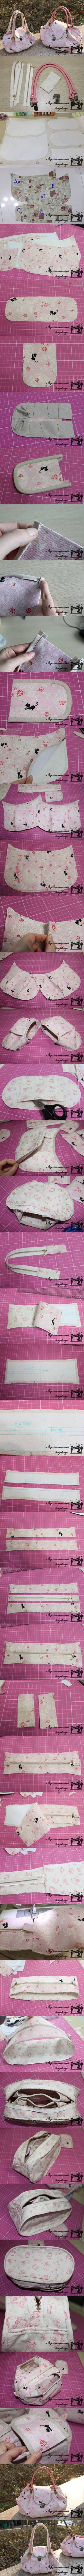 DIY Sew Cute Handbag DIY Sew Cute Handbag